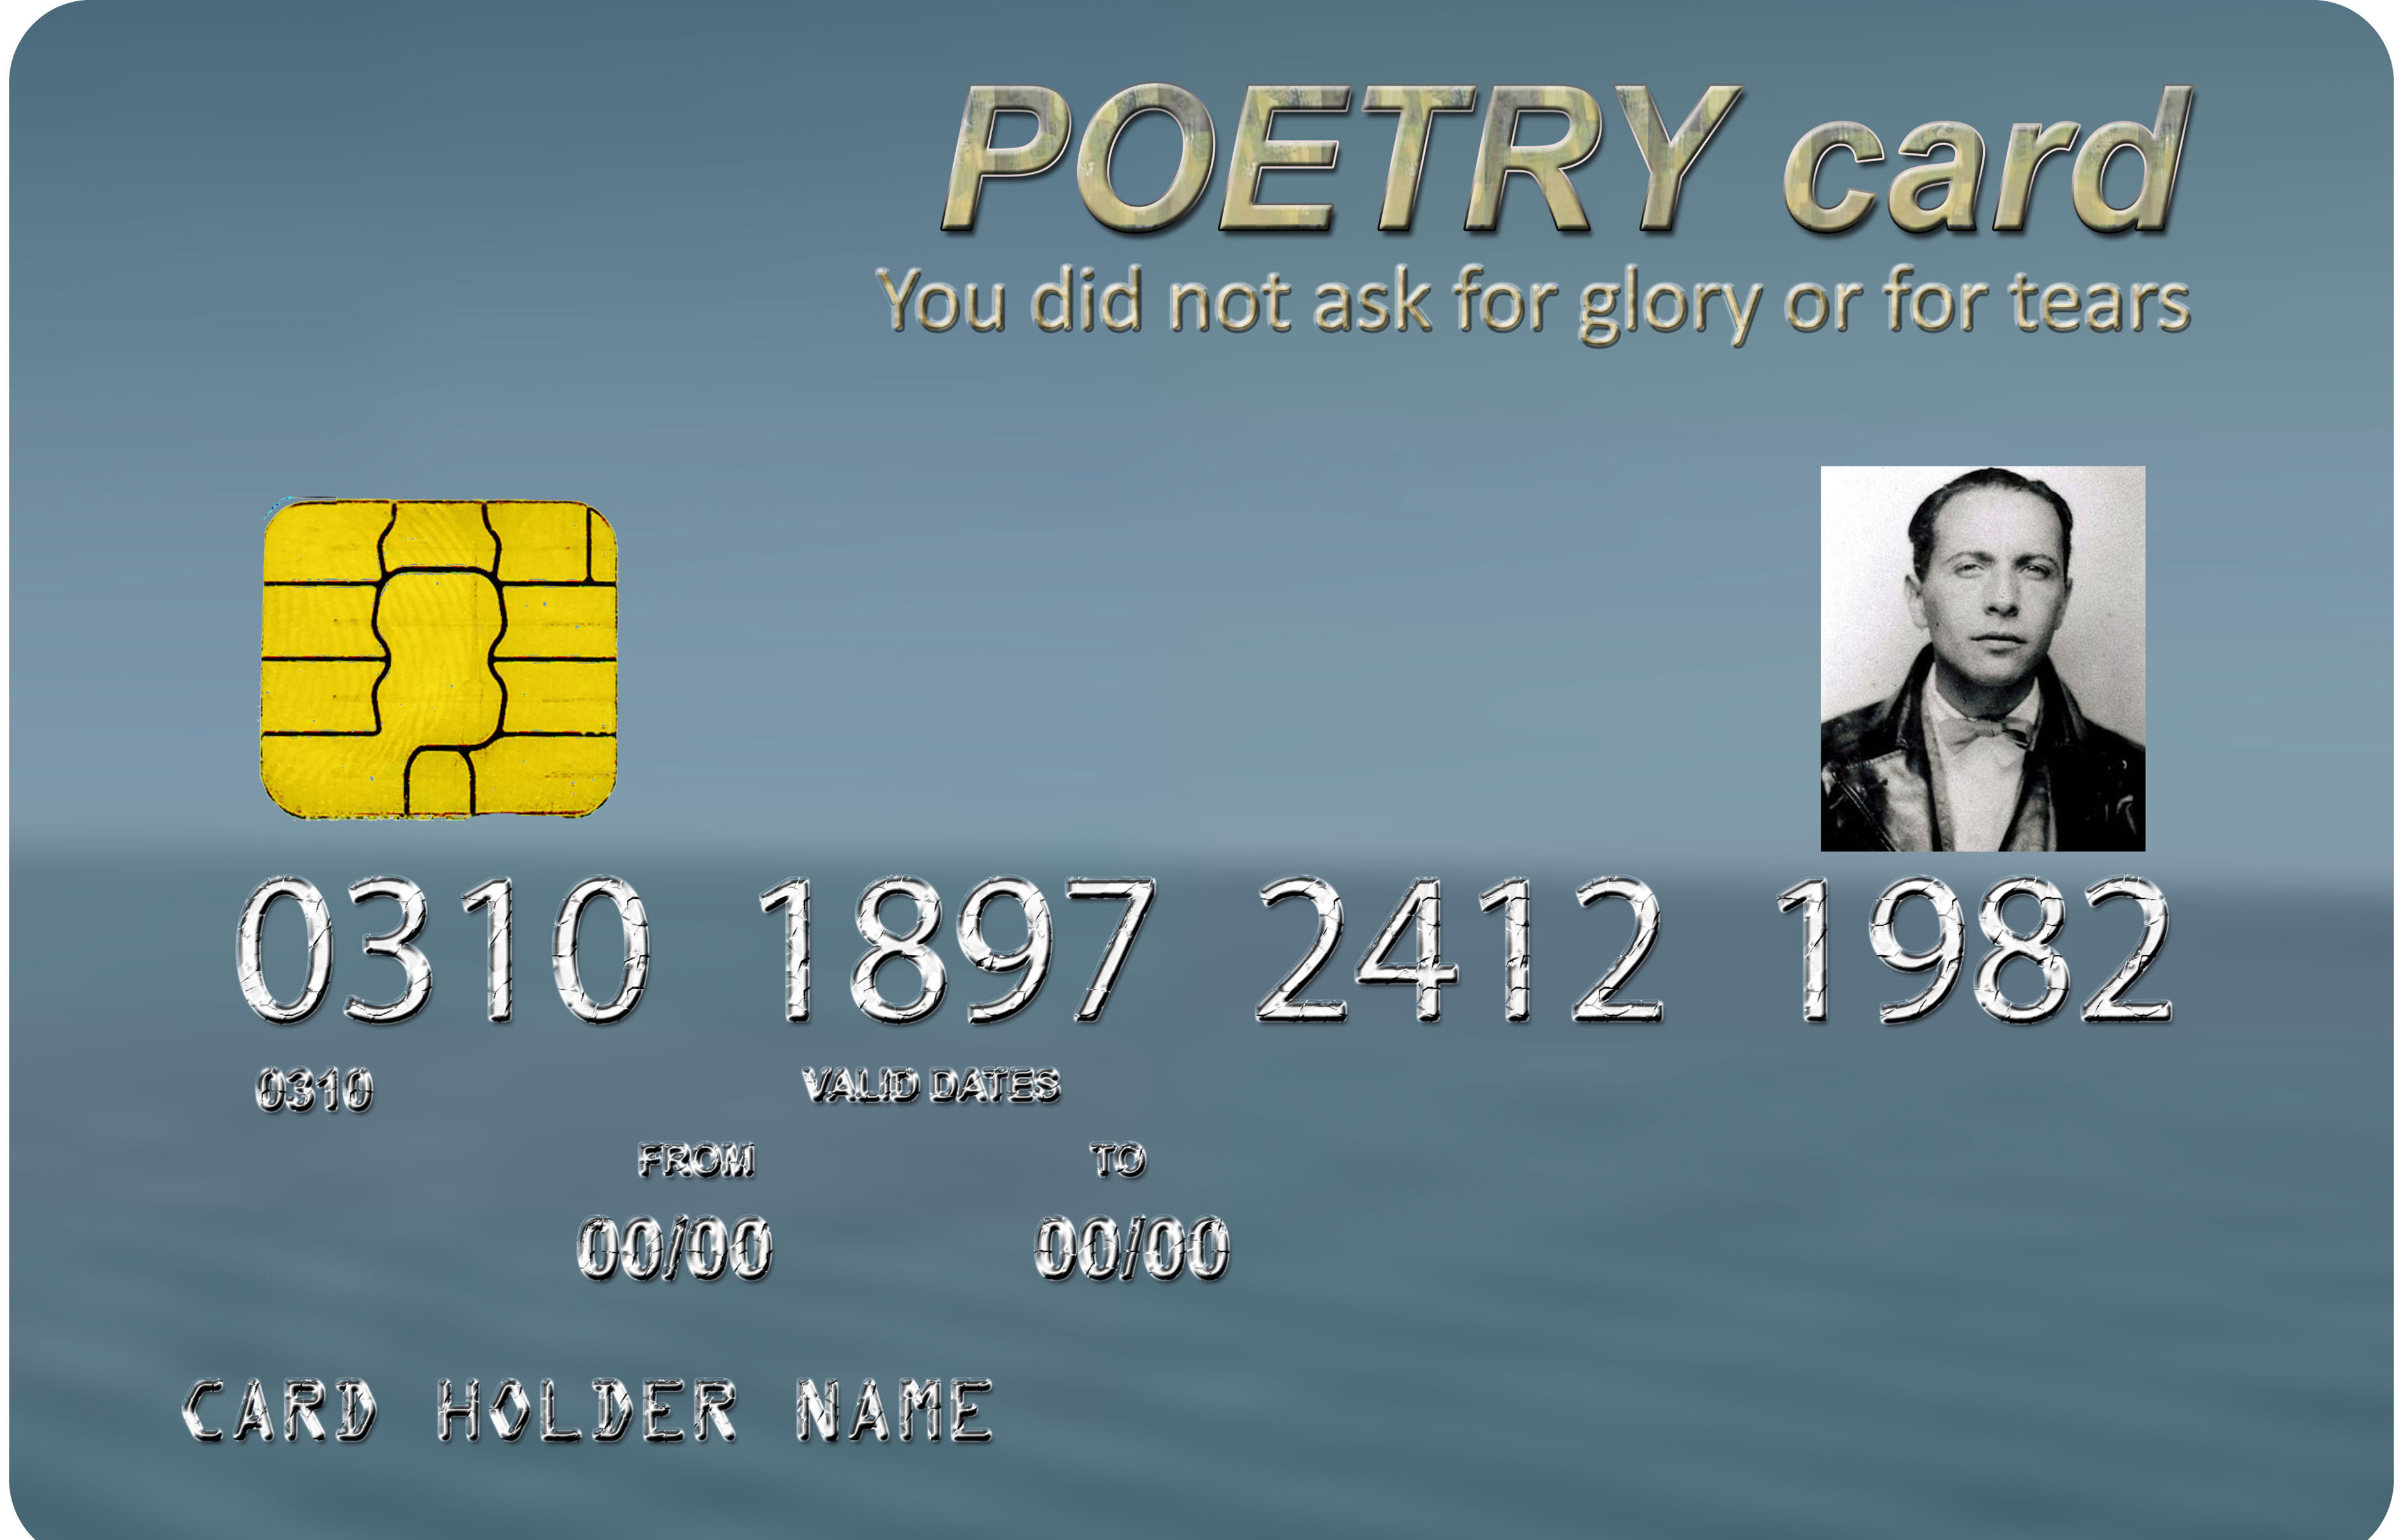 POETRY CARD